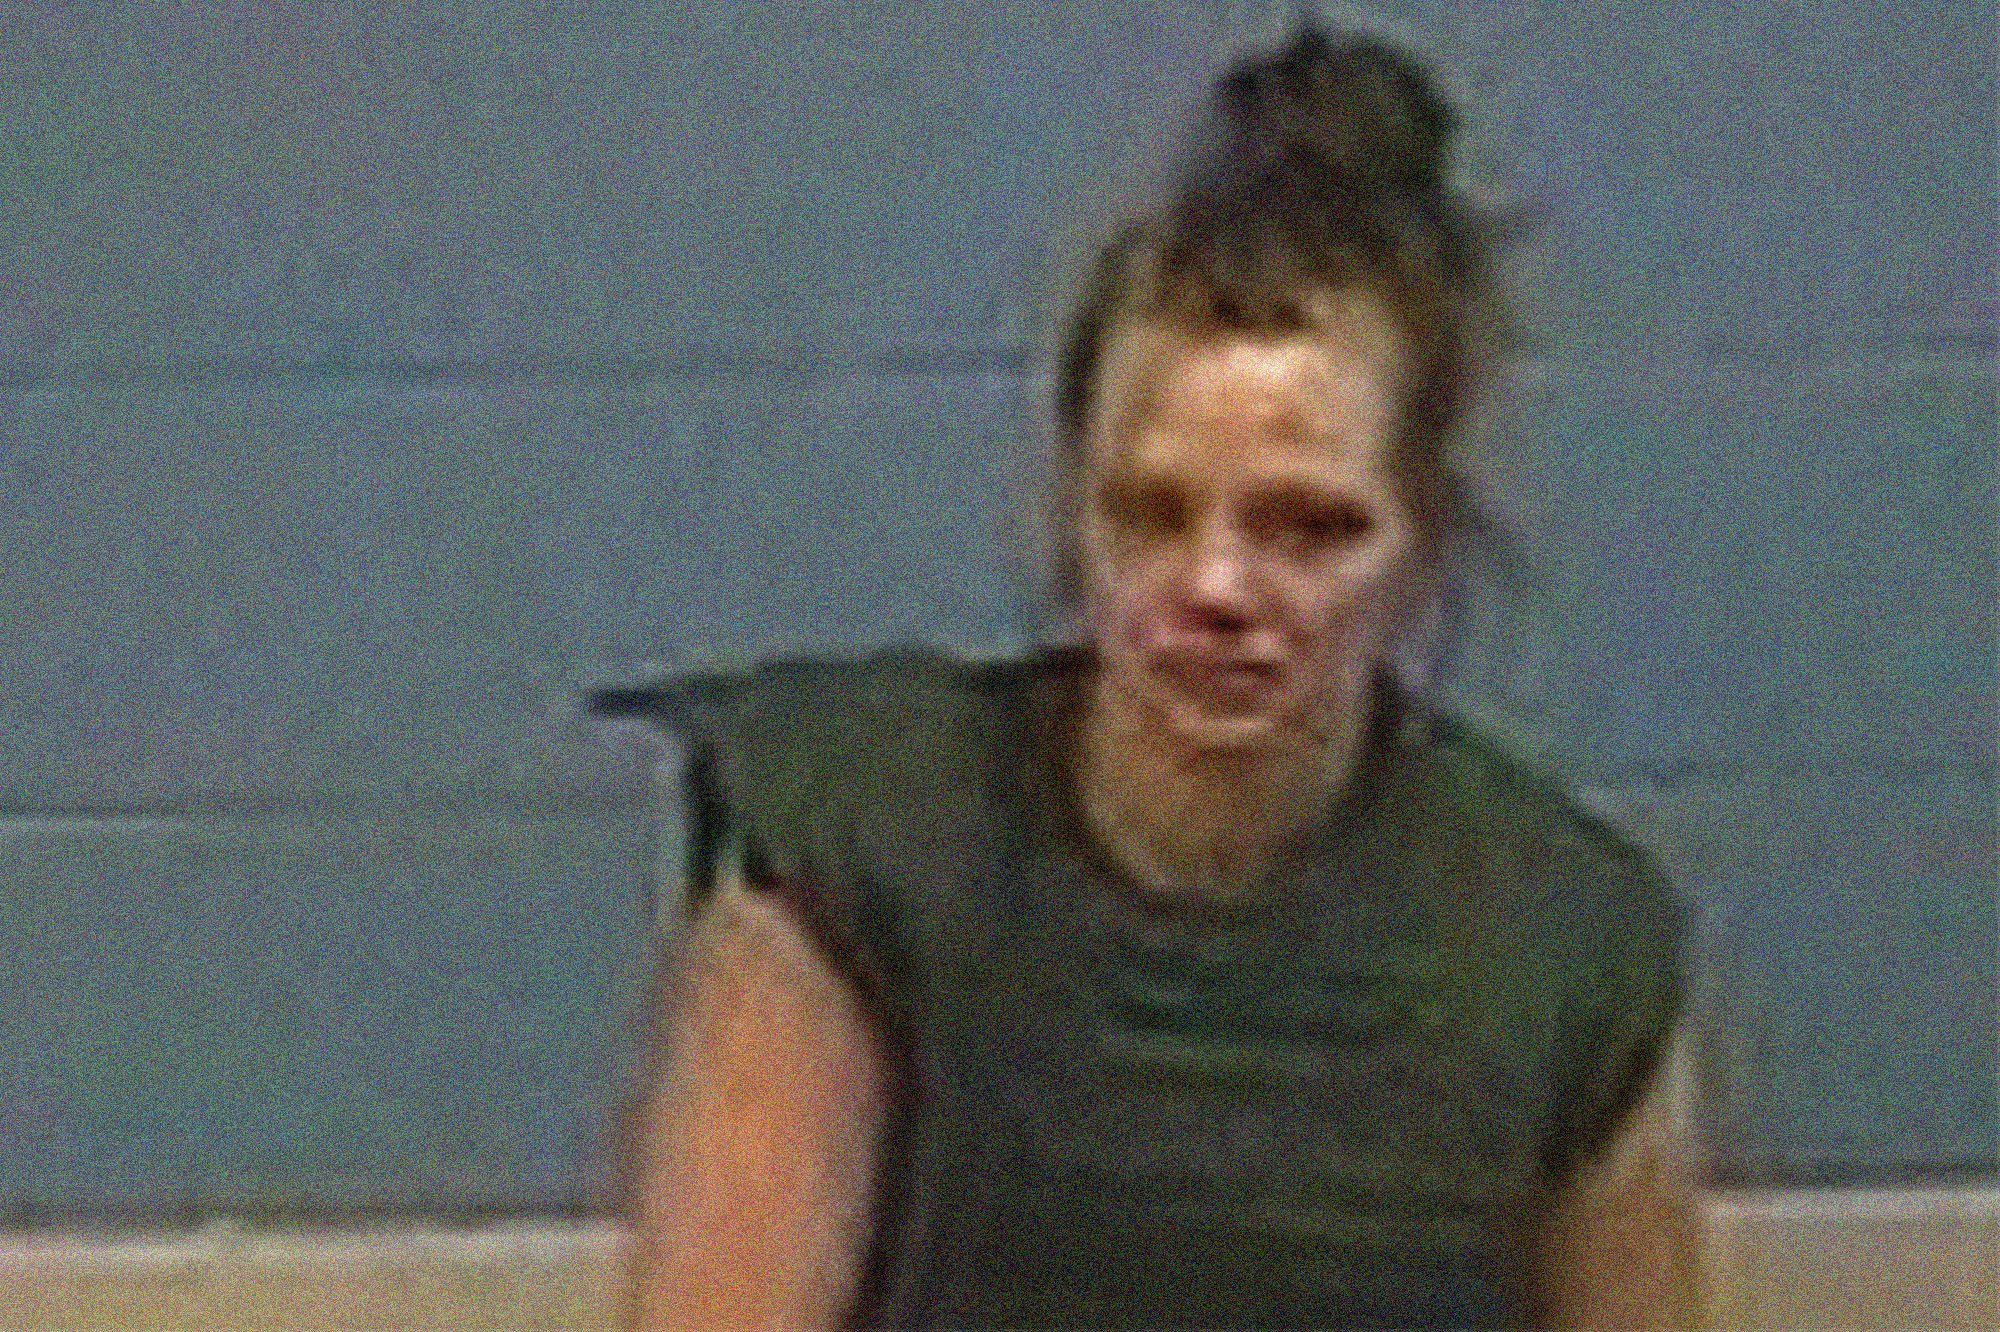 Mom arrested after 1-month-old baby girl found dead in dryer